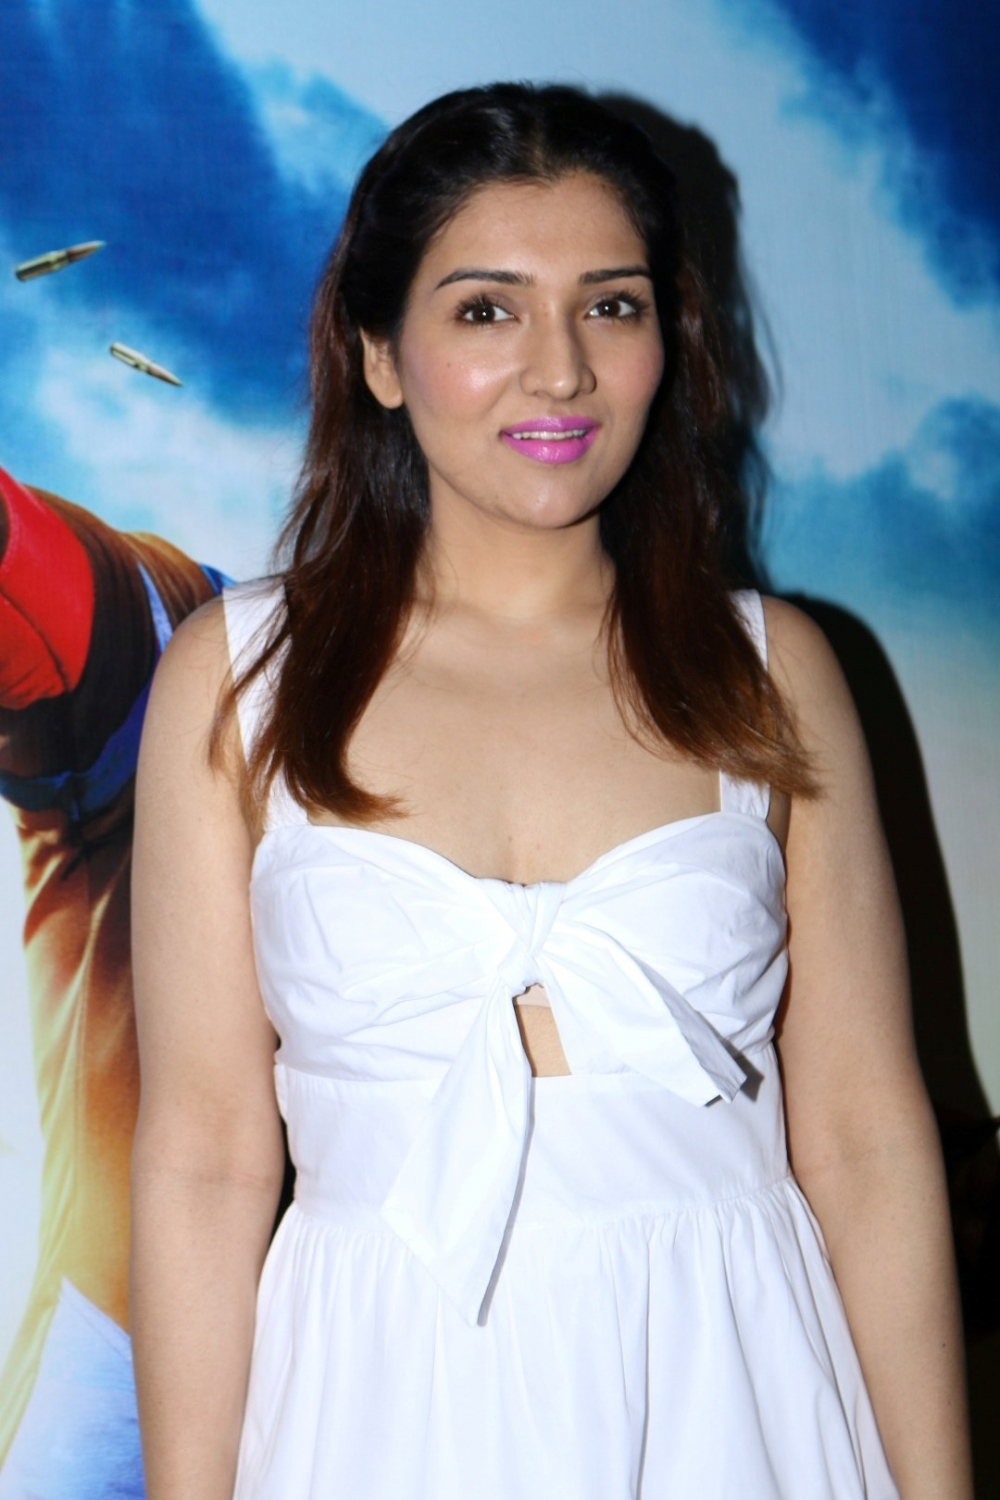 Mumbai:  Actor and Govinda's daughter Tina Ahuja during the trailer launch of film Aa Gaya Hero in Mumbai on Feb 1, 2017. (Photo: IANS)